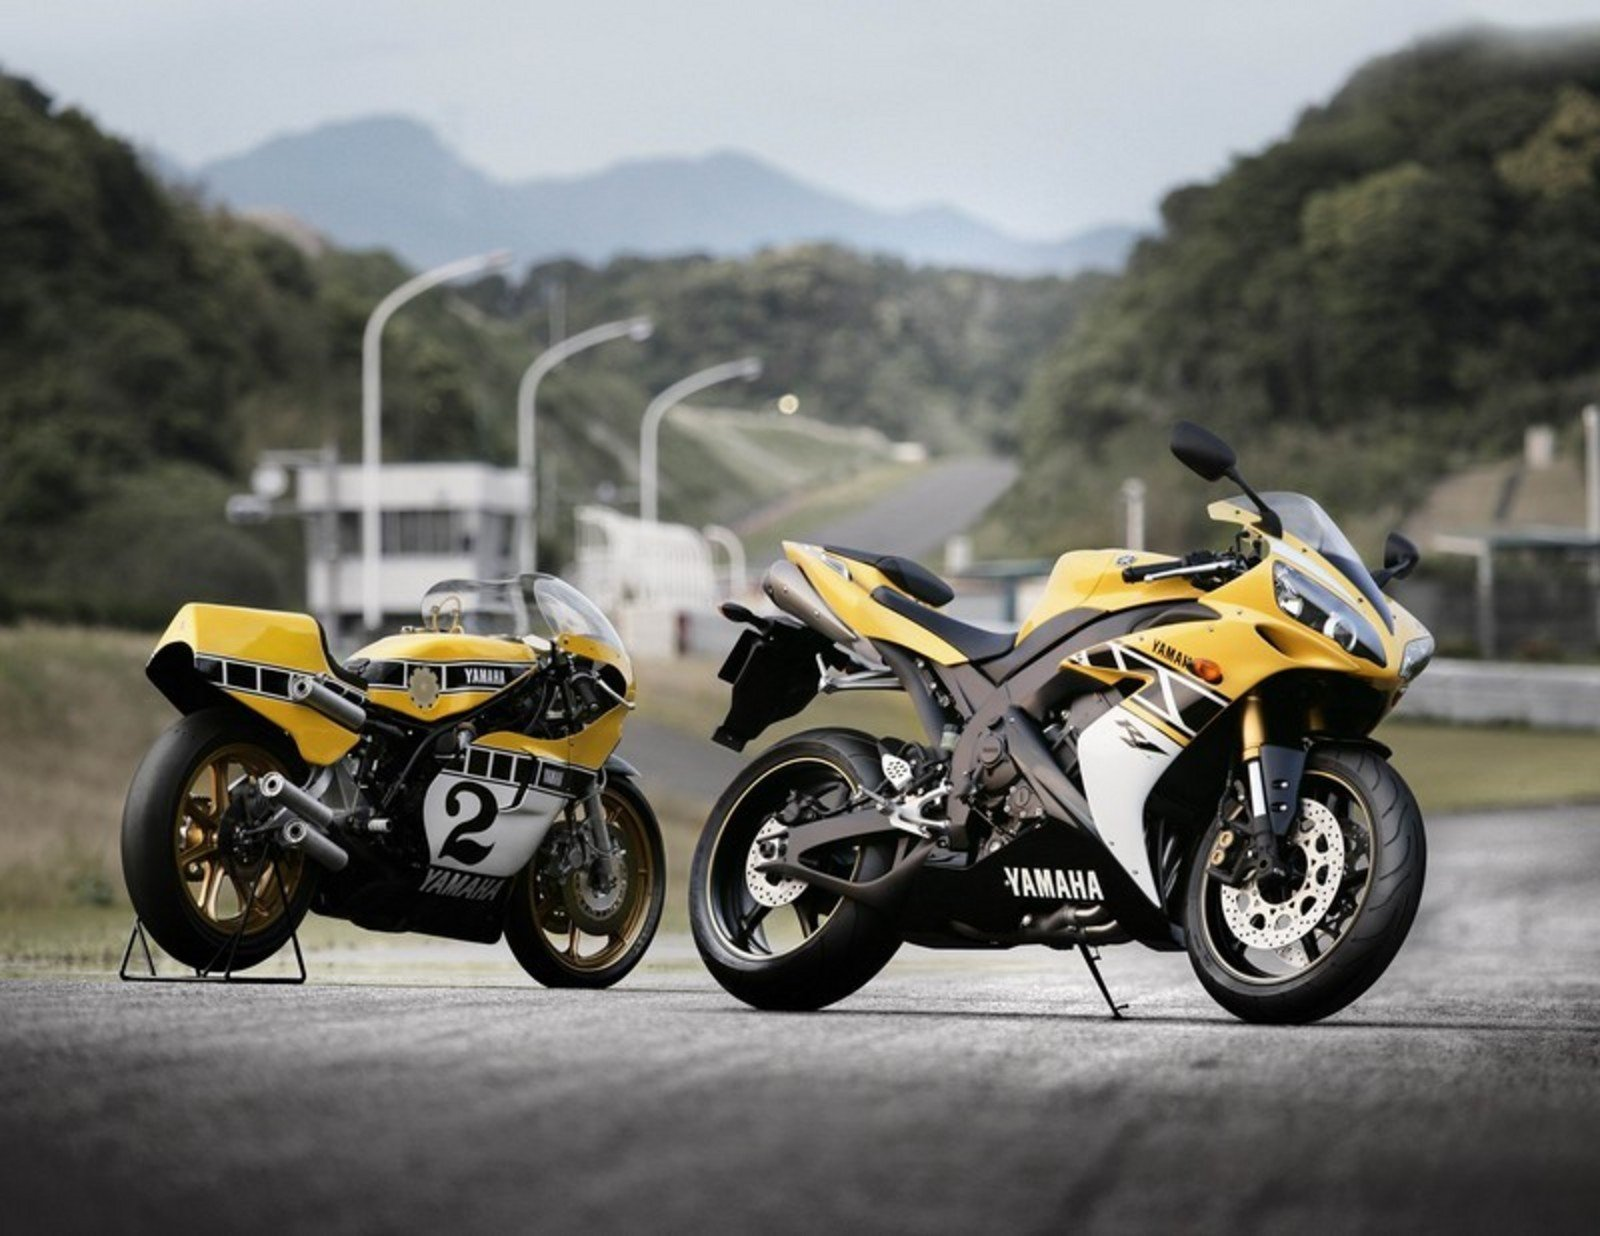 SUPER GREAT SPORTBIKES: YAMAHA YZF R1 2006 SOLD